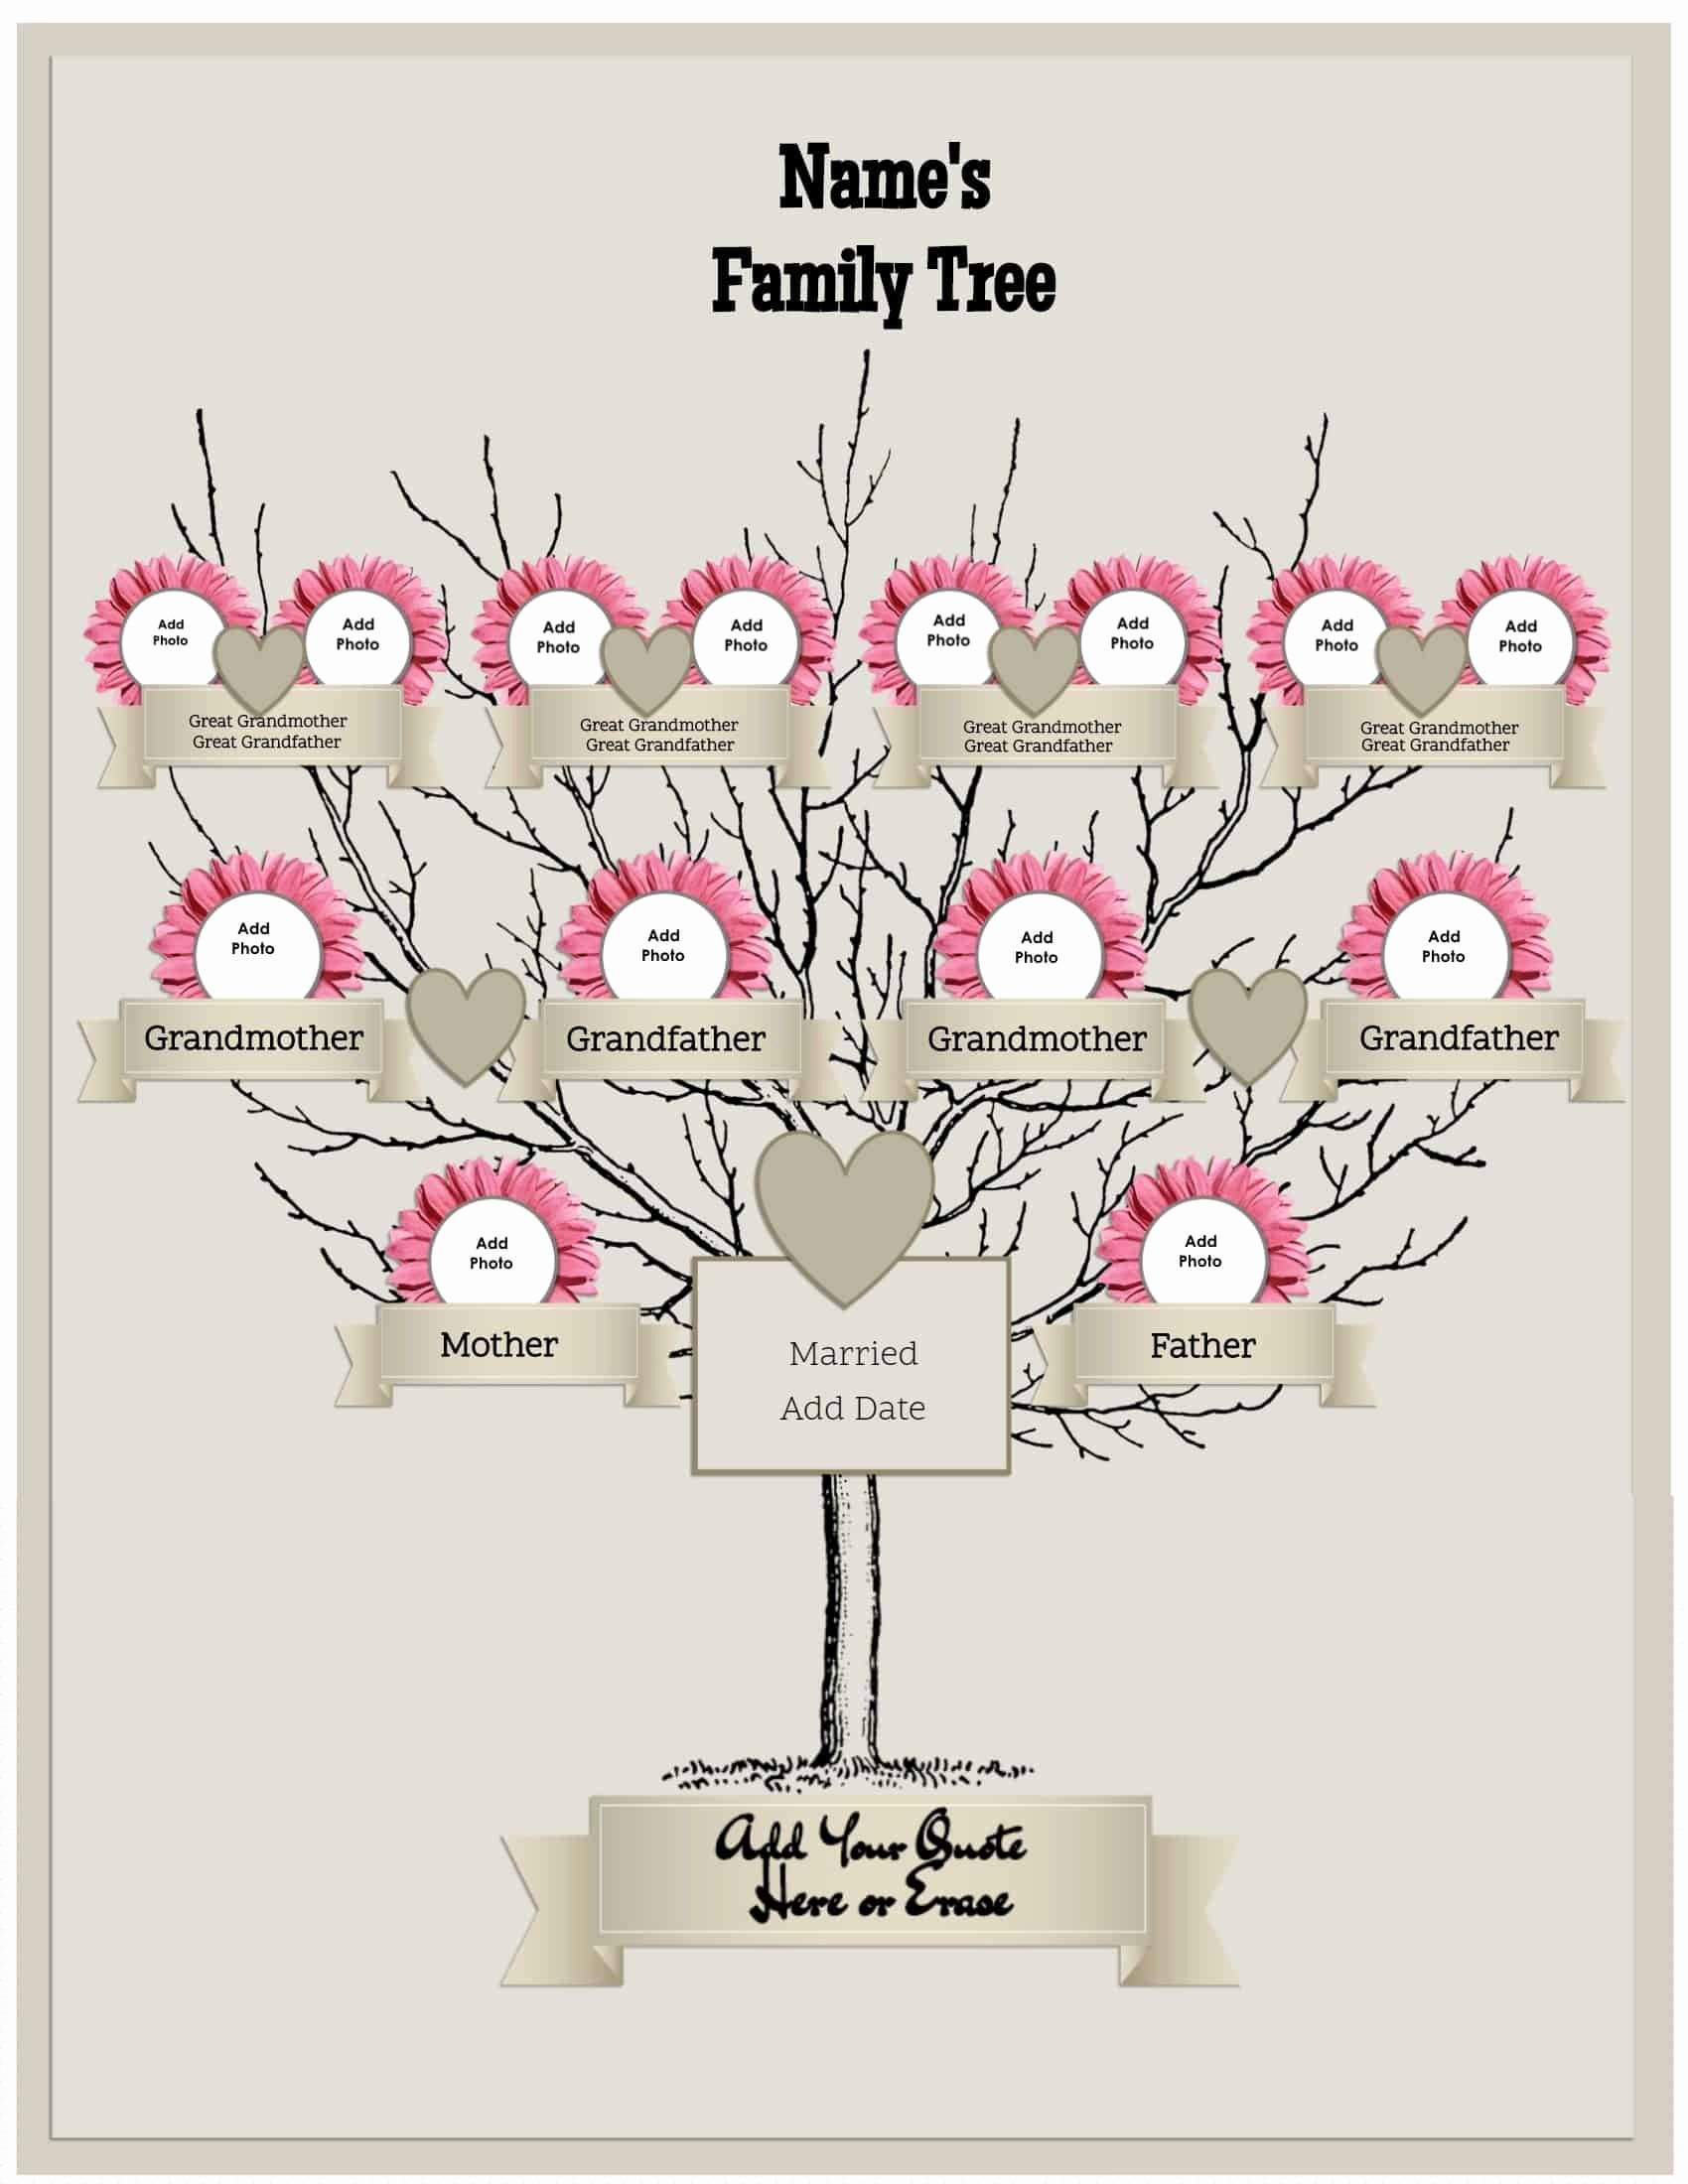 3 Generation Family Tree Unique 3 Generation Family Tree Generator